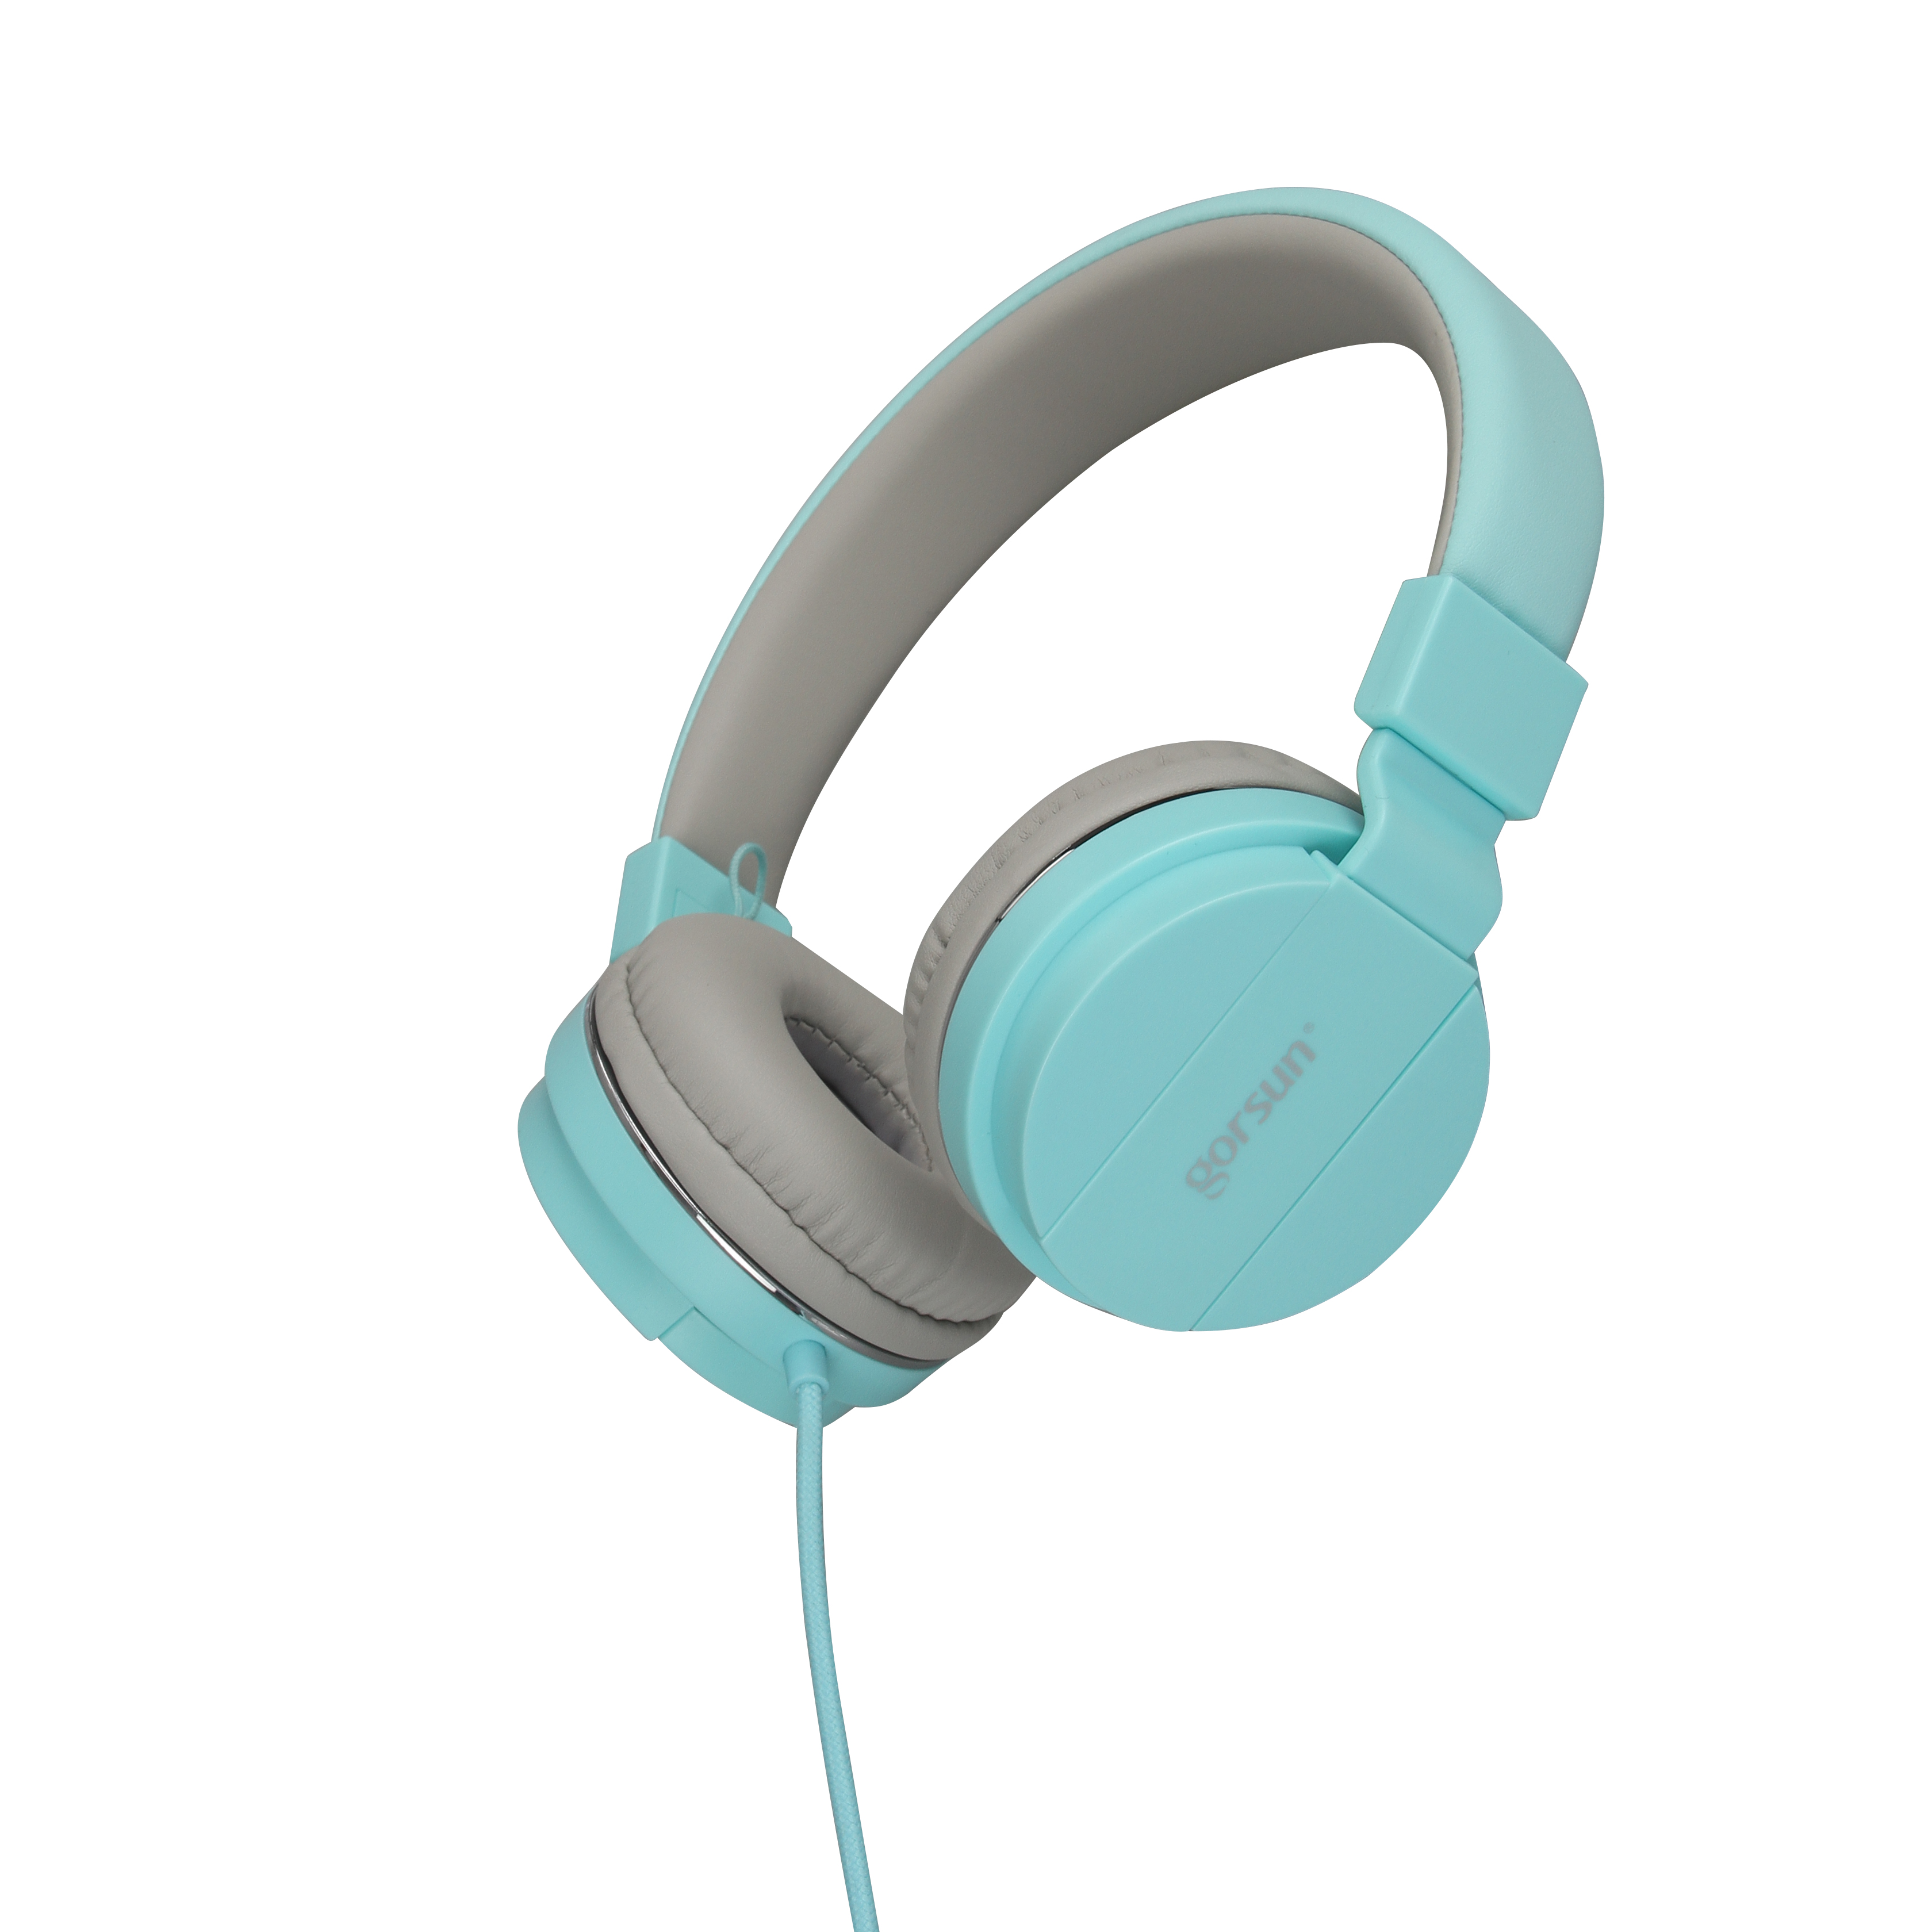 Gorsun GS-779 Universal Foldable Wired Headphone Headset With Mic Super Bass For iPhone Samsung